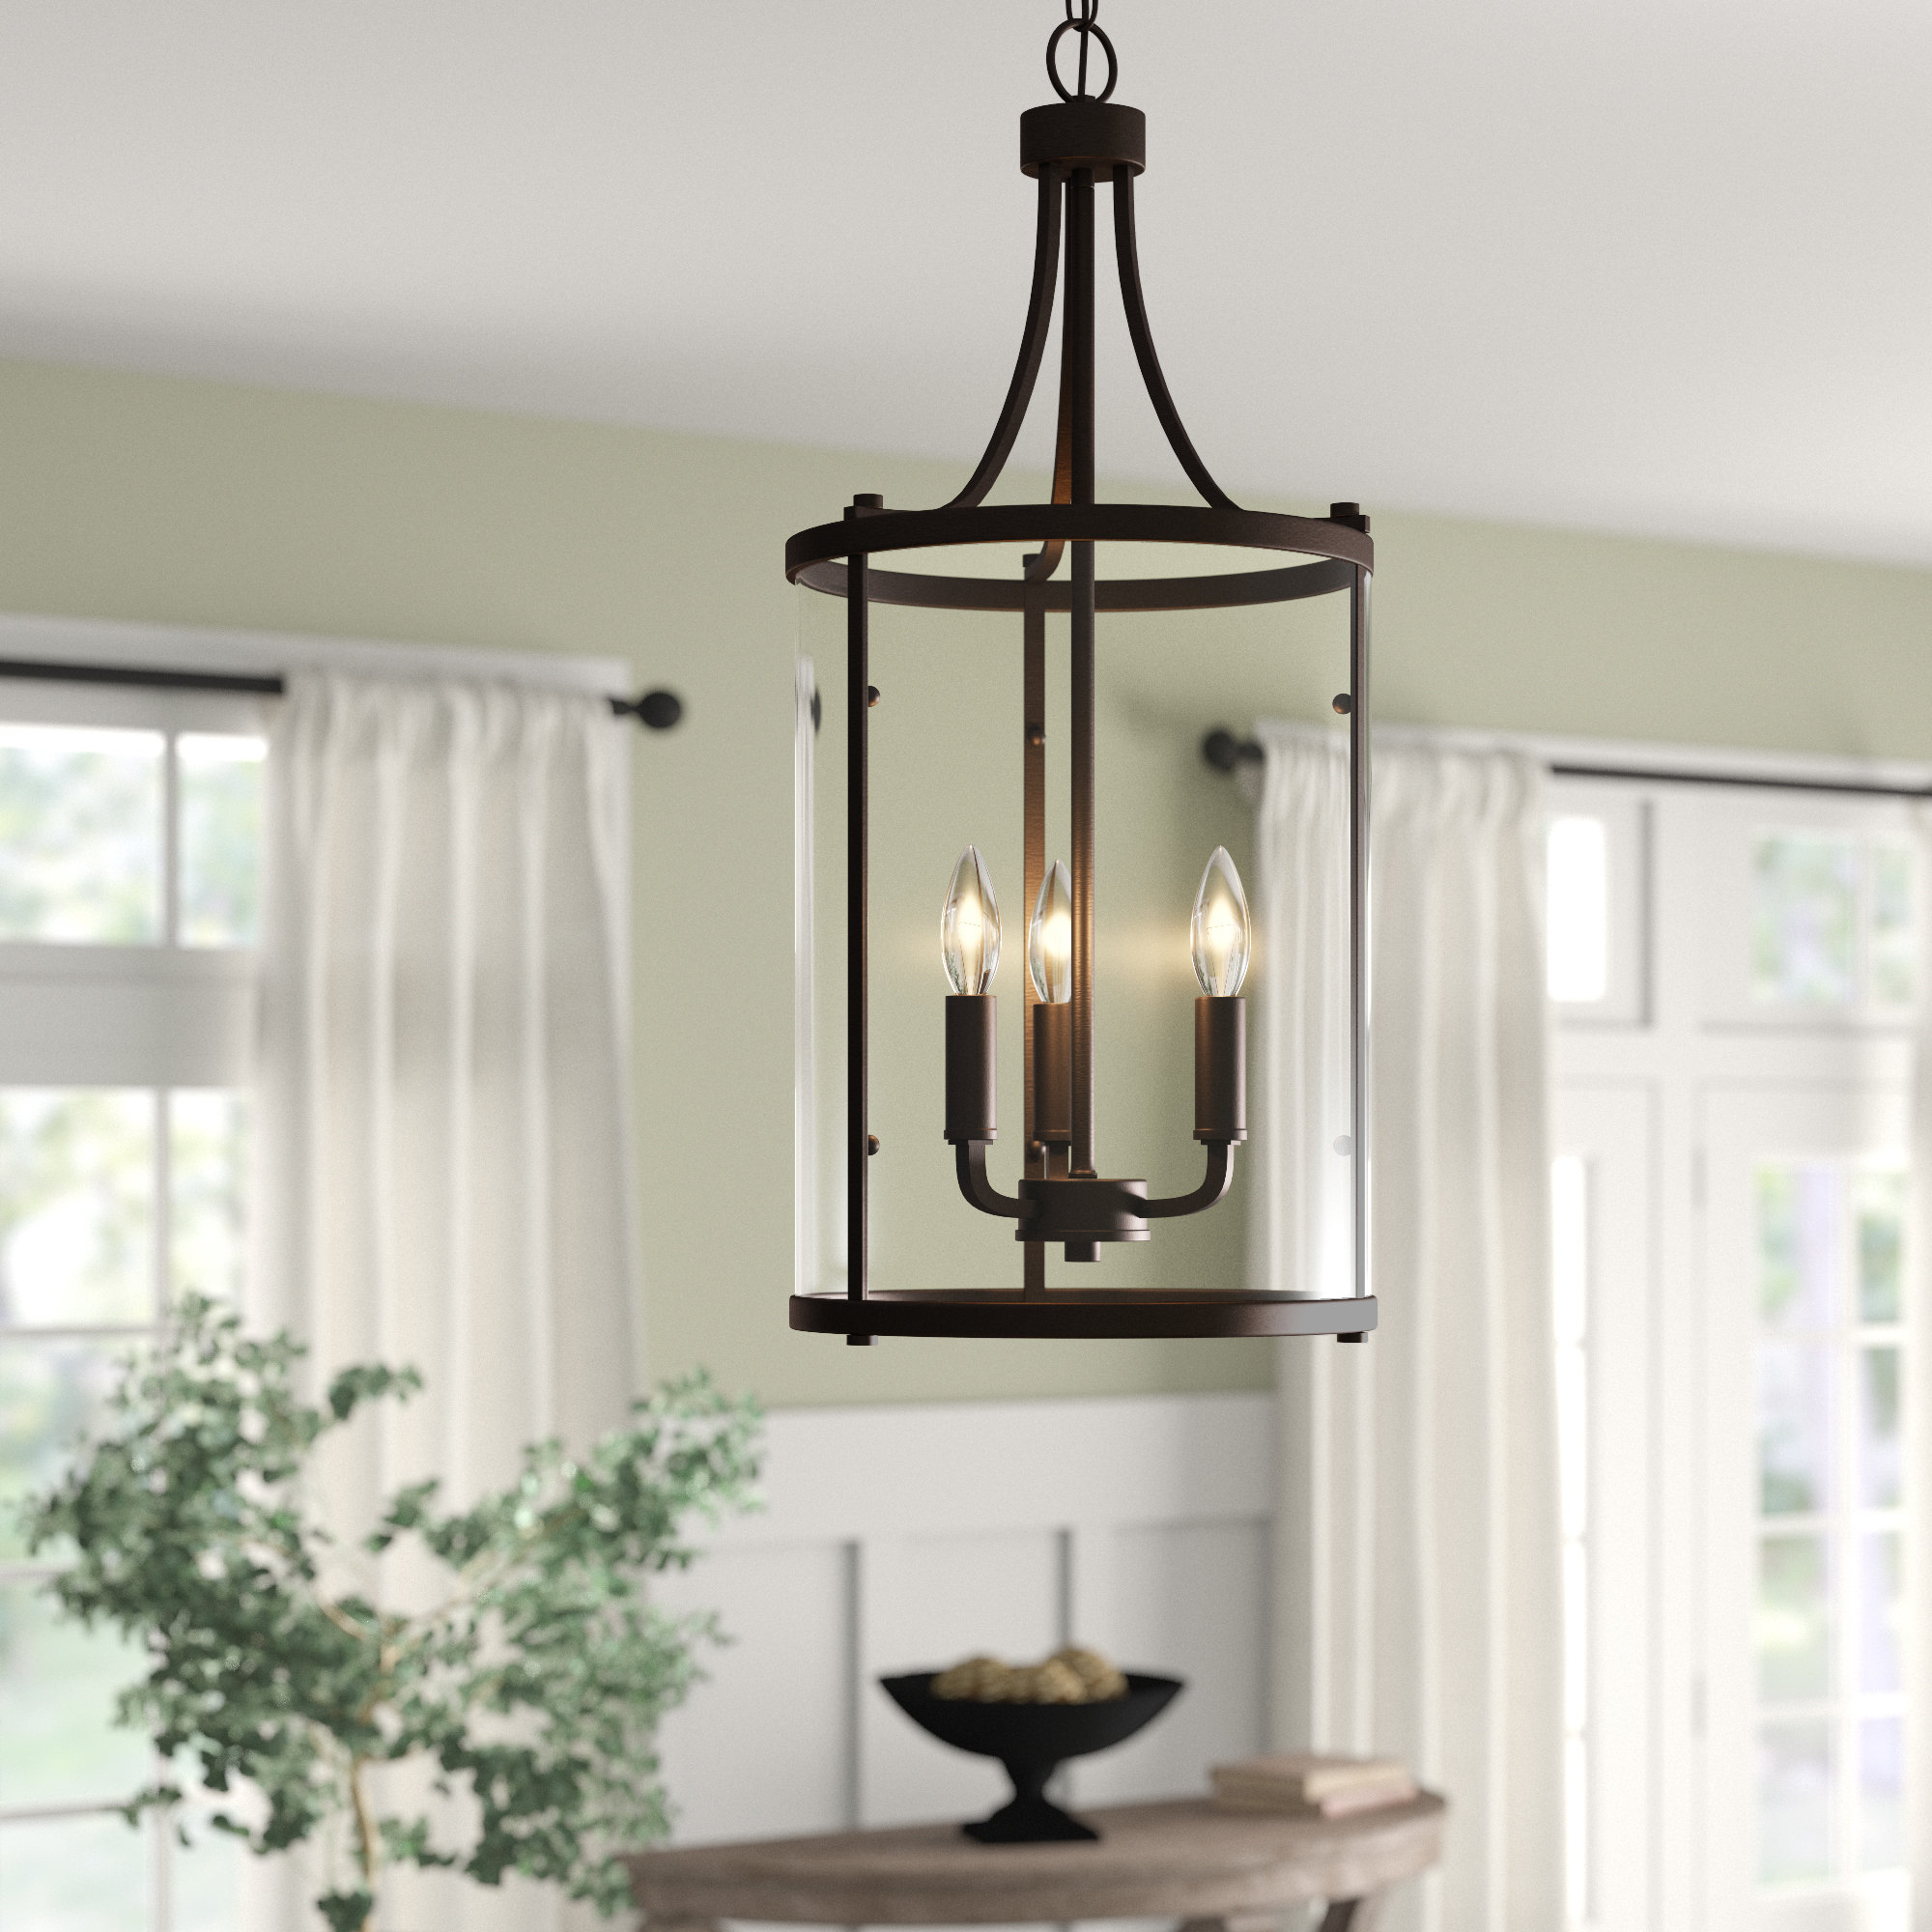 Armande 3 Light Pendant | Wayfair In Armande 4 Light Lantern Drum Pendants (View 9 of 30)